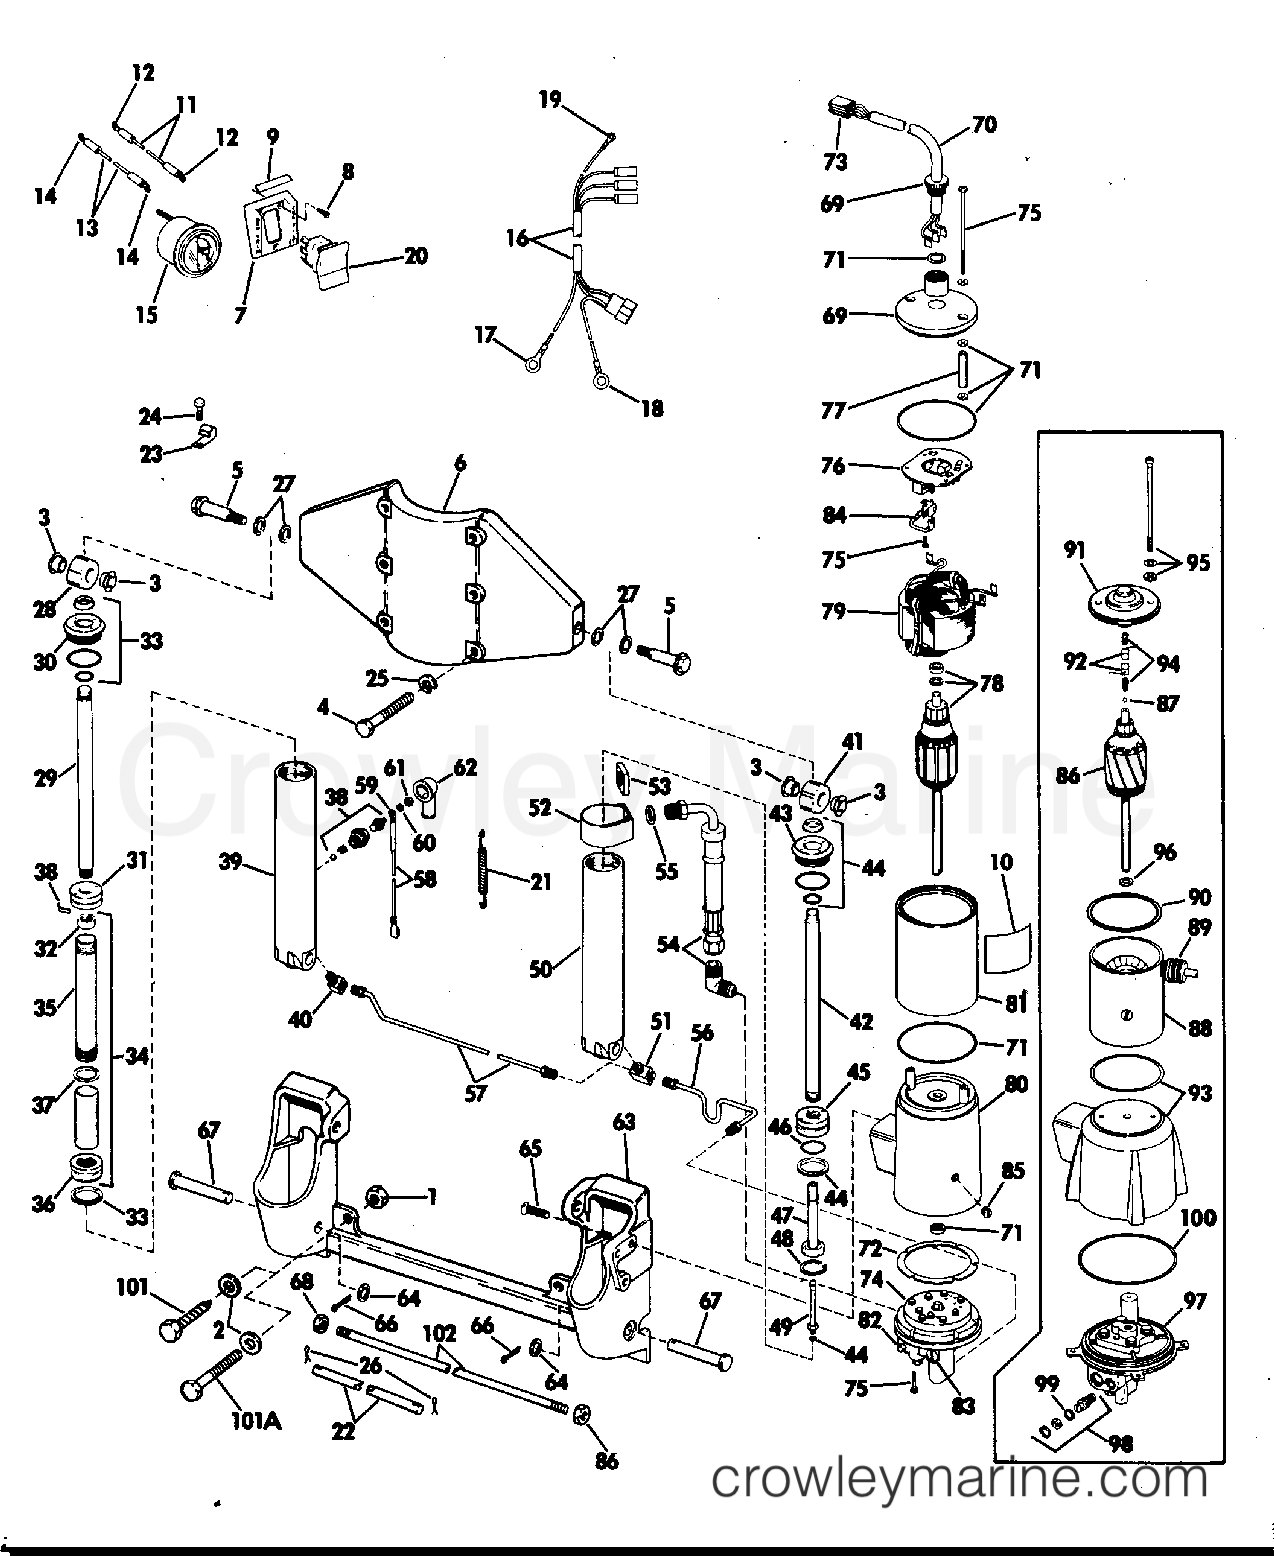 50 Hp Johnson Outboard 1973 Wiring Diagram, 50, Free